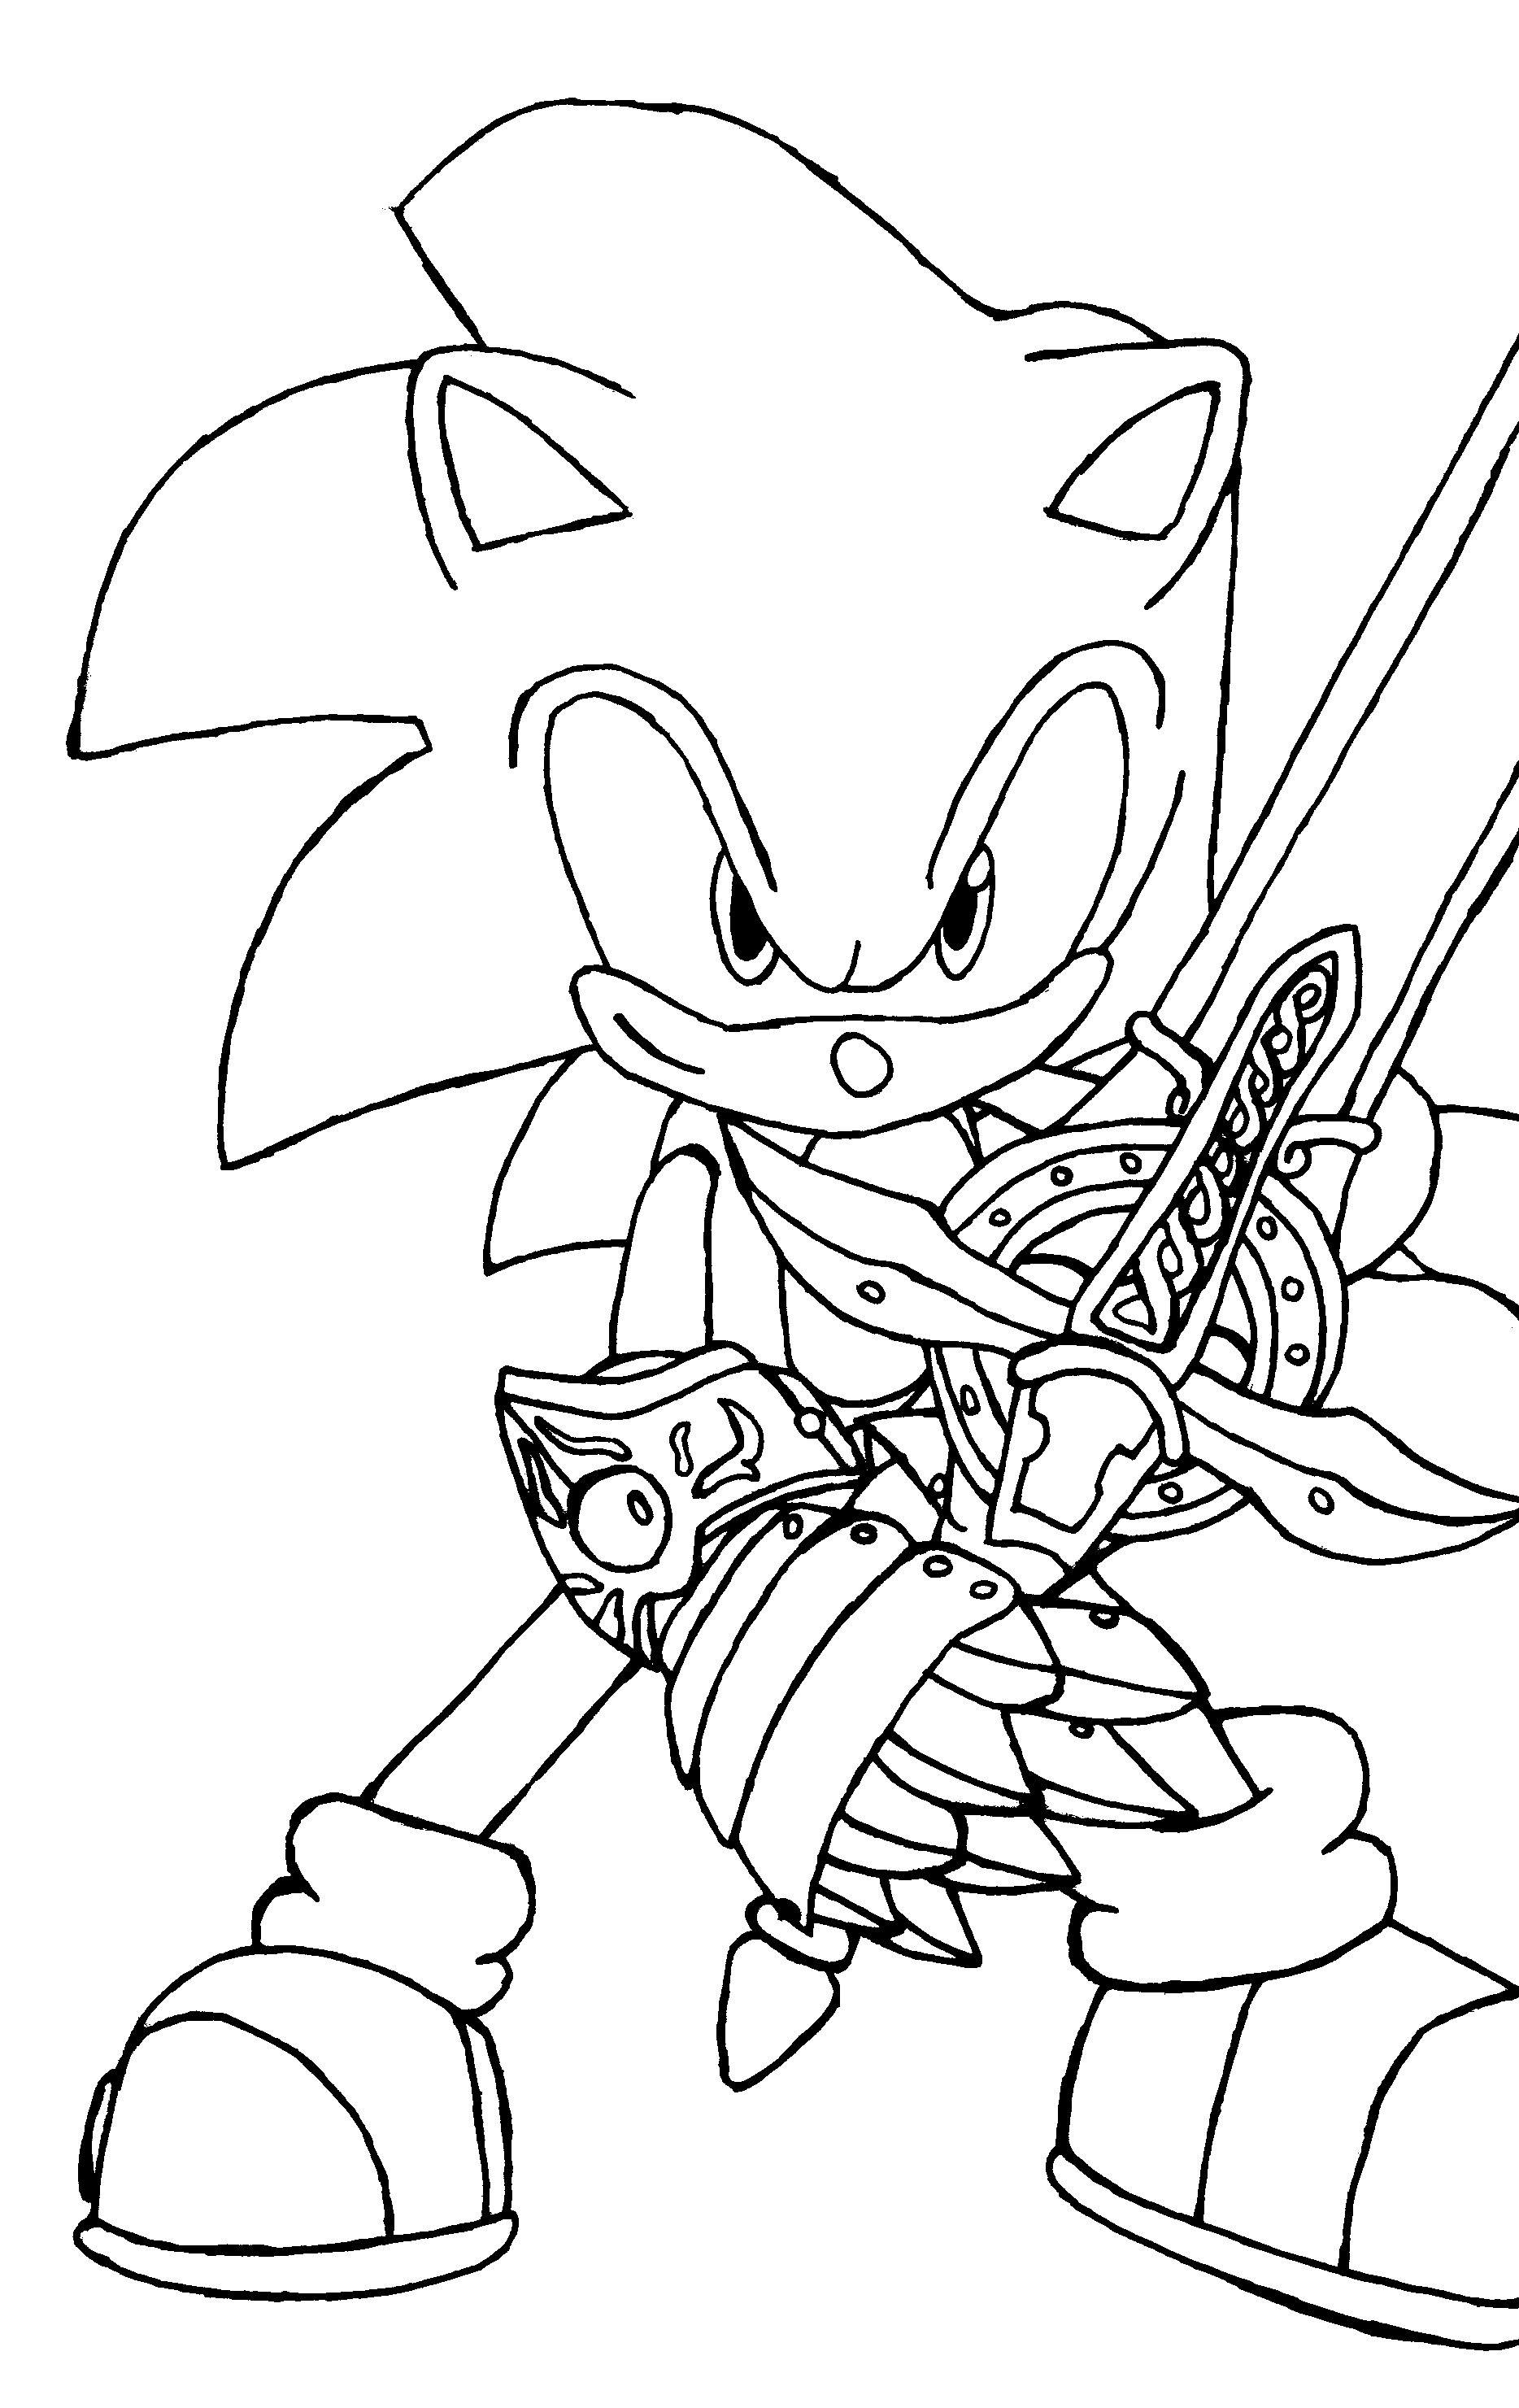 Print Pictures Of Sonic   Sonic The Hedgehog Coloring Pages Free - Sonic Coloring Pages Free Printable